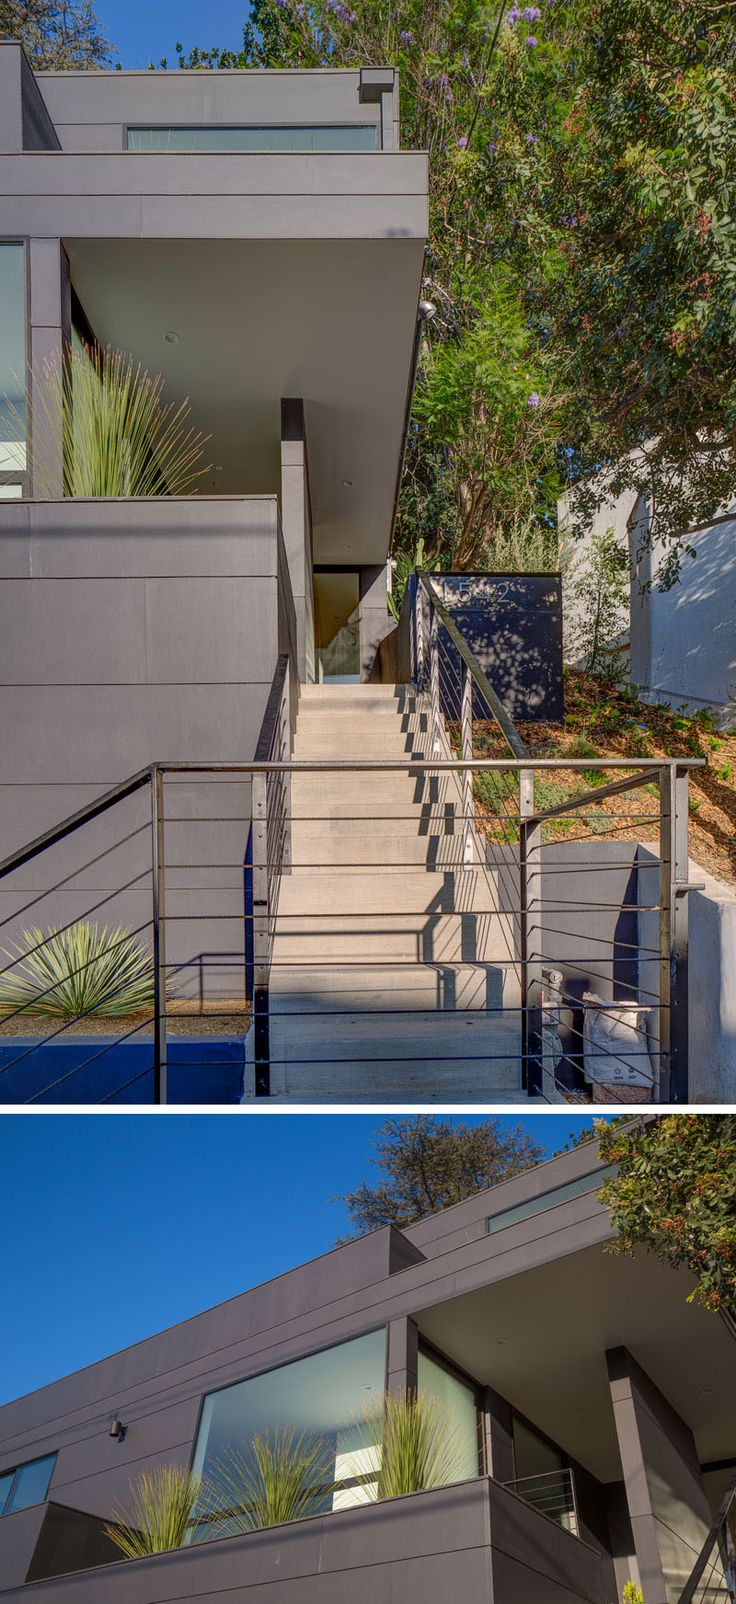 This modern house has concrete stairs with a minimalist black handrail lead up to a small covered deck that provides protection from the elements and access to the front door. #ExteriorStairs #Architecture